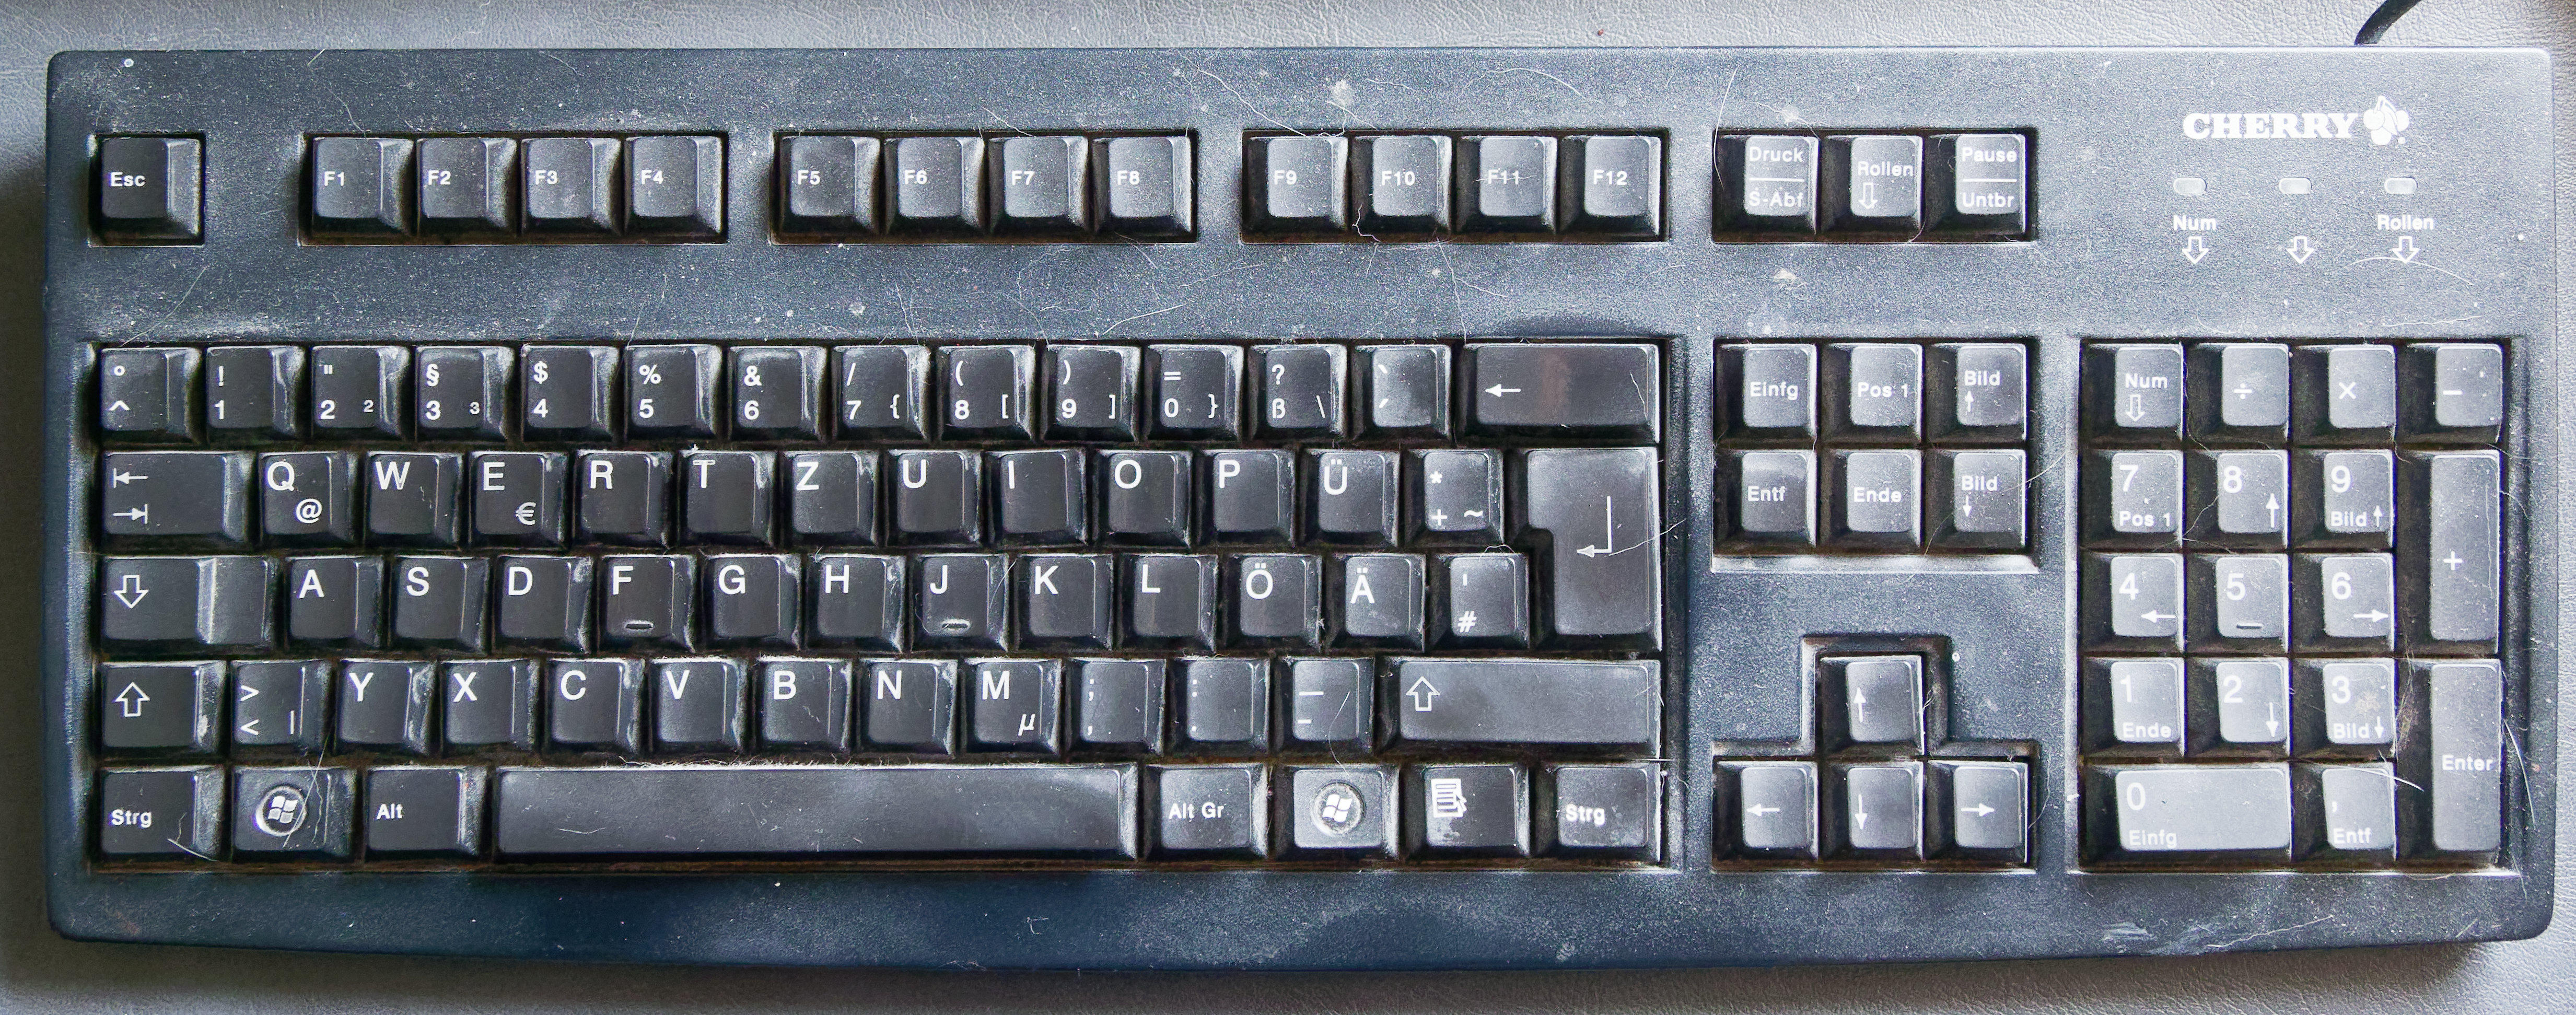 German-Cherry-keyboard.jpeg